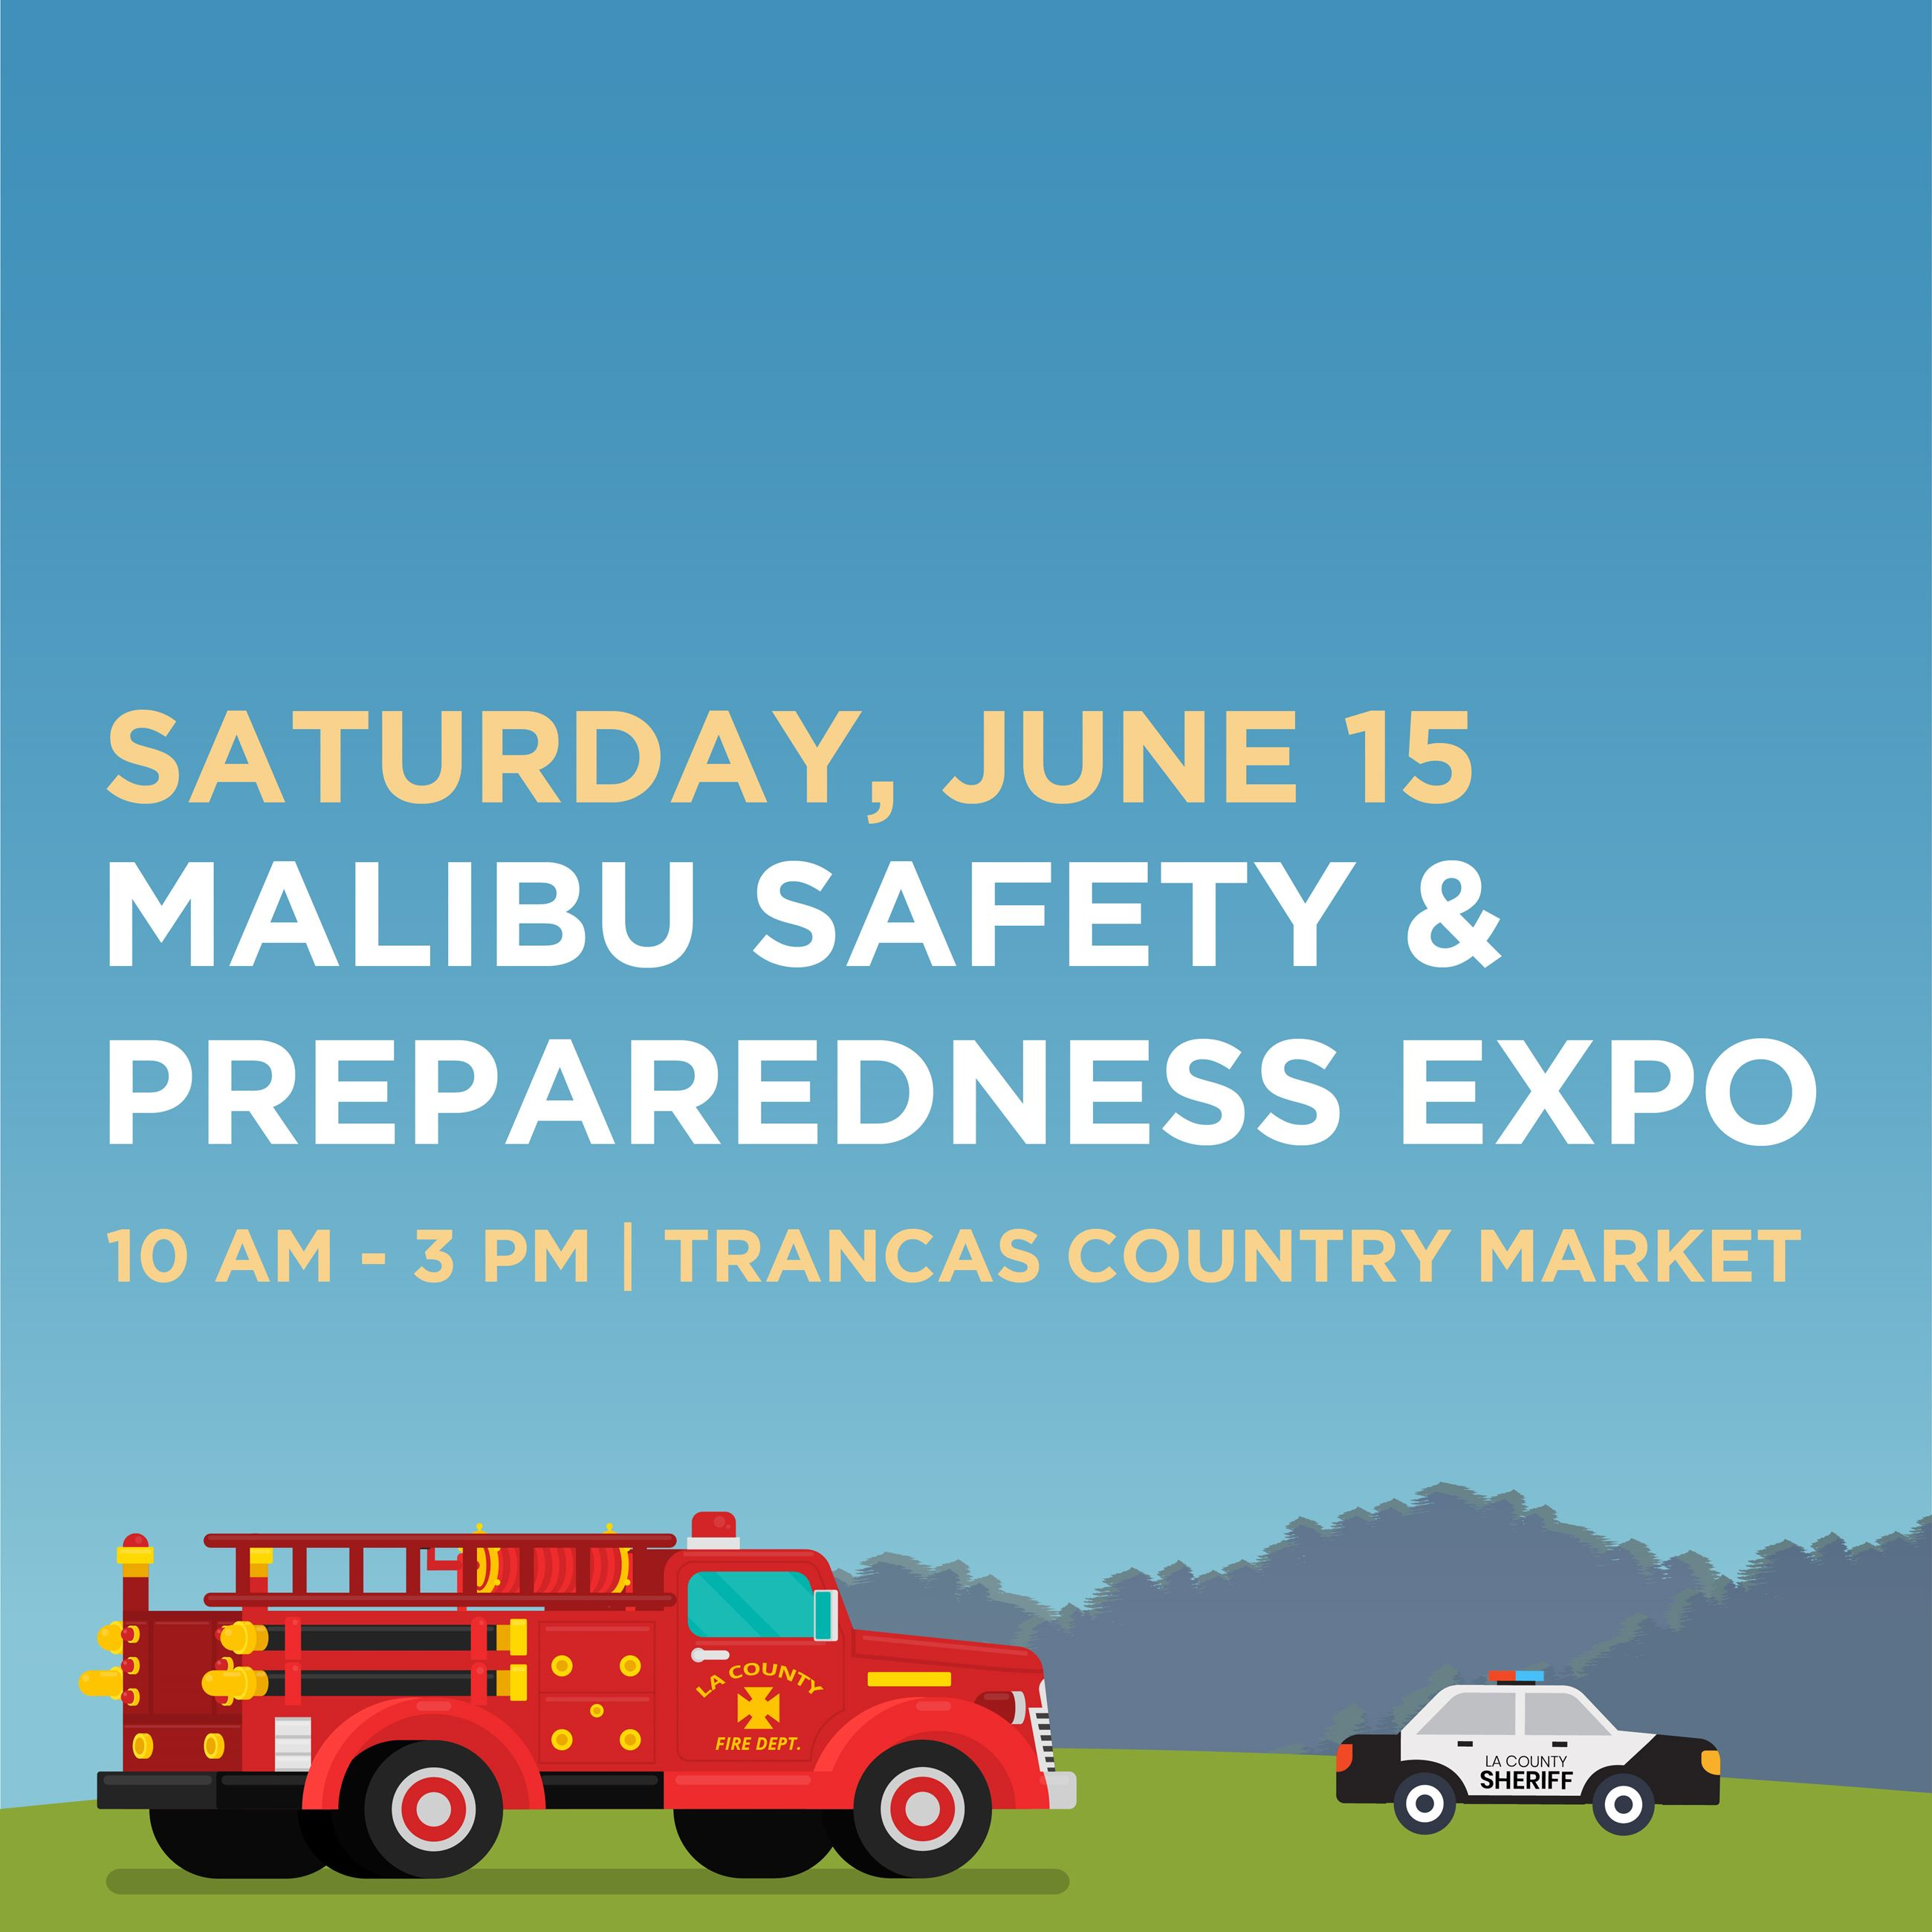 Preparedness Expo 2019